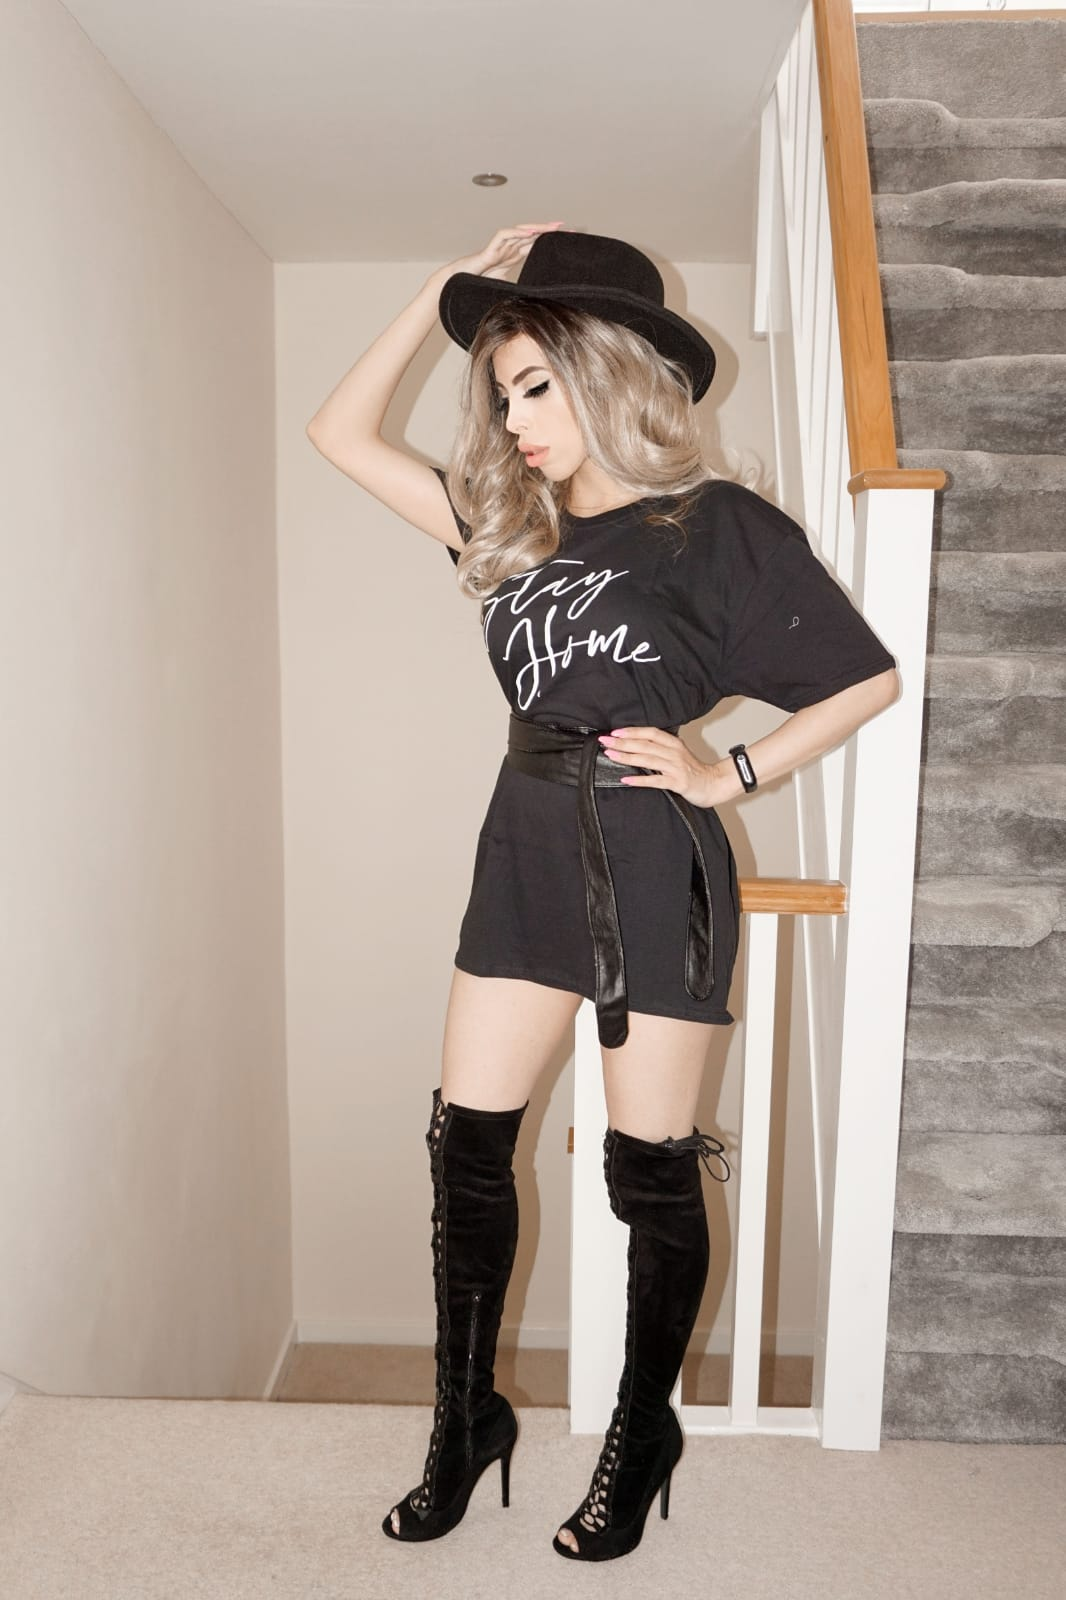 The Femme Luxe Black 'Stay Home' Slogan Print T-Shirt in model Giana.